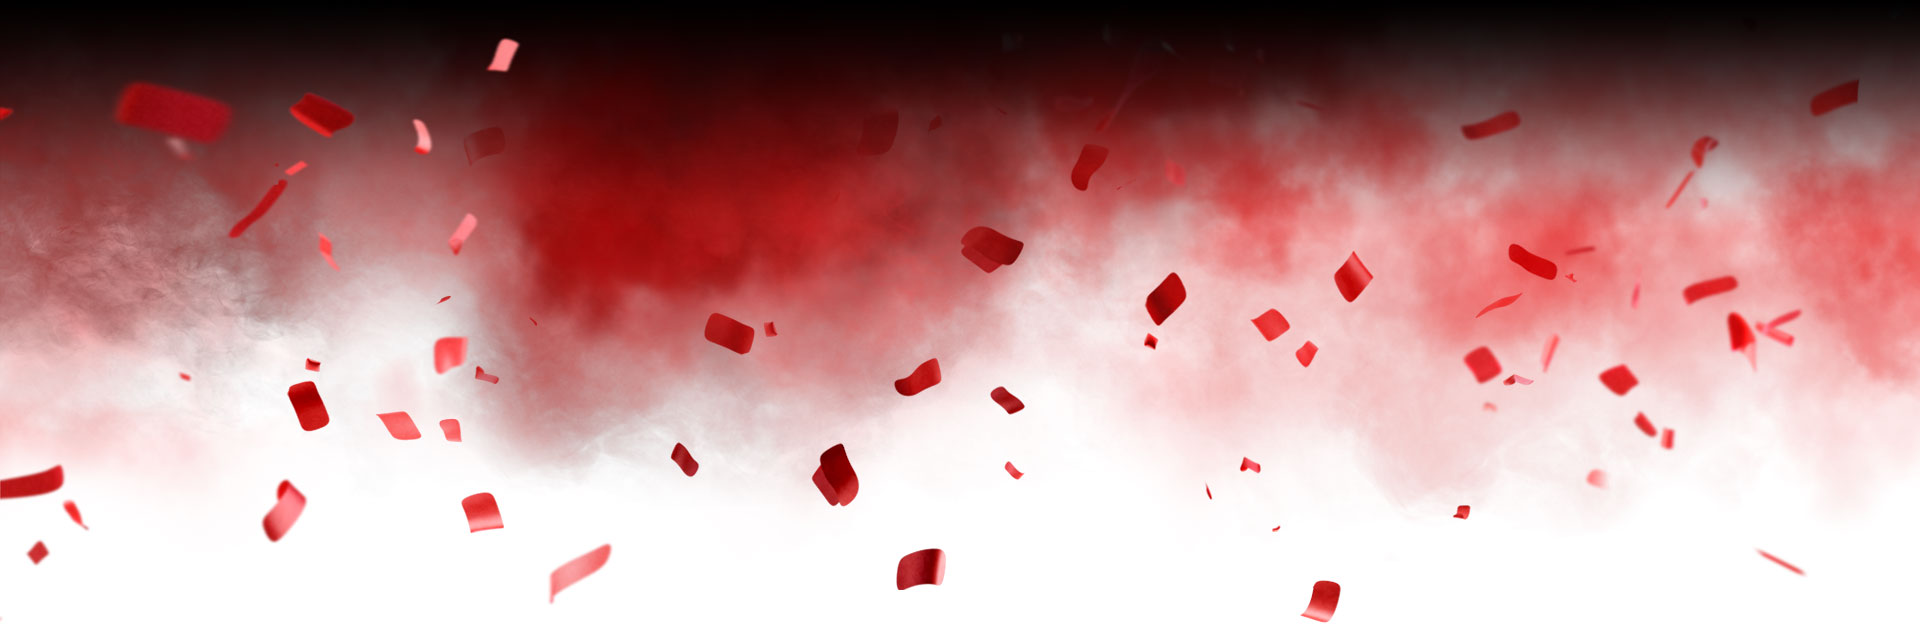 Black background with red smoke and red confetti.